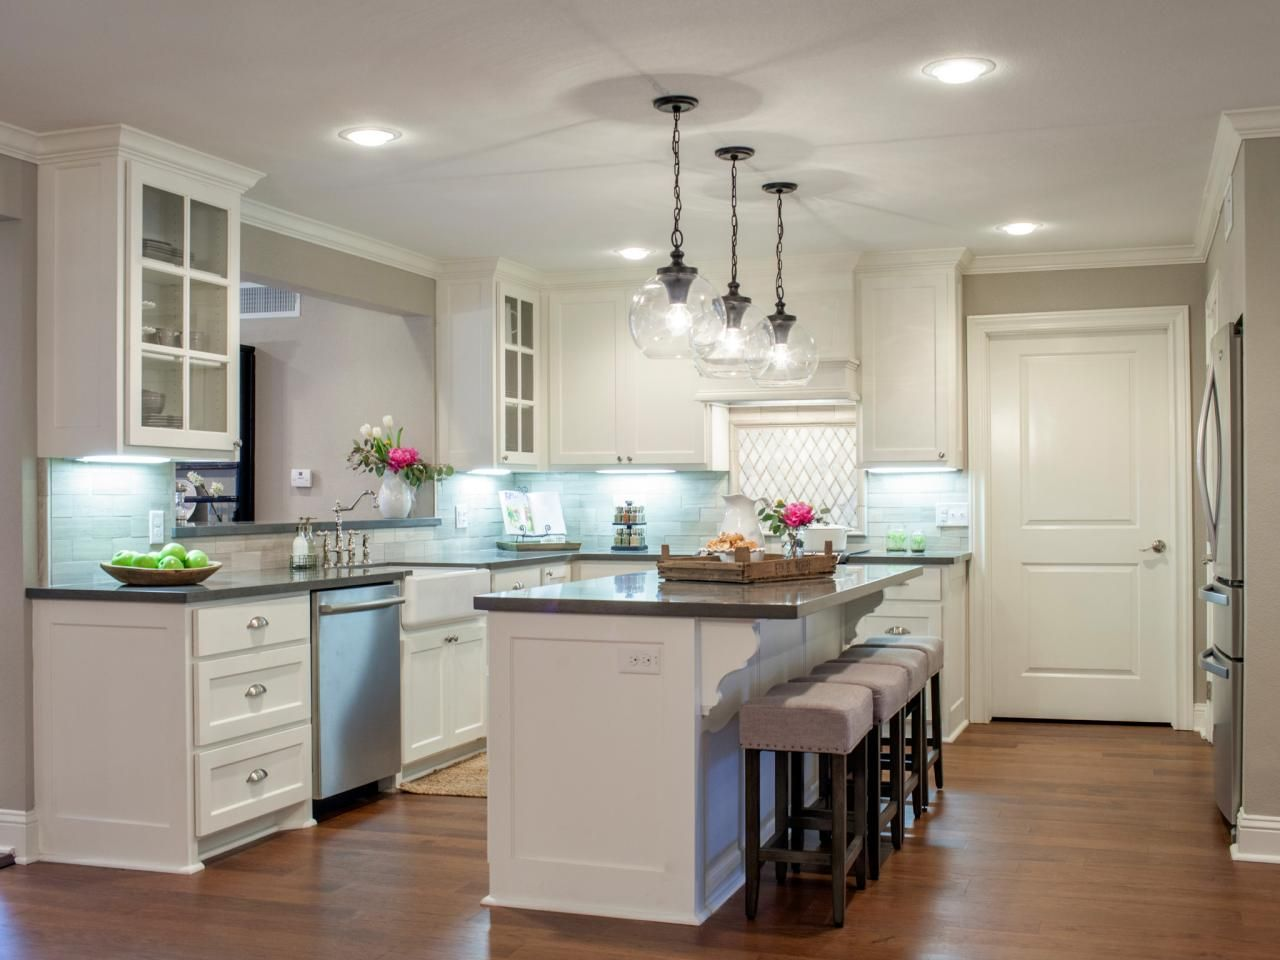 Fixer upper gaines kitchen - As Seen On Hgtv S Fixer Upper